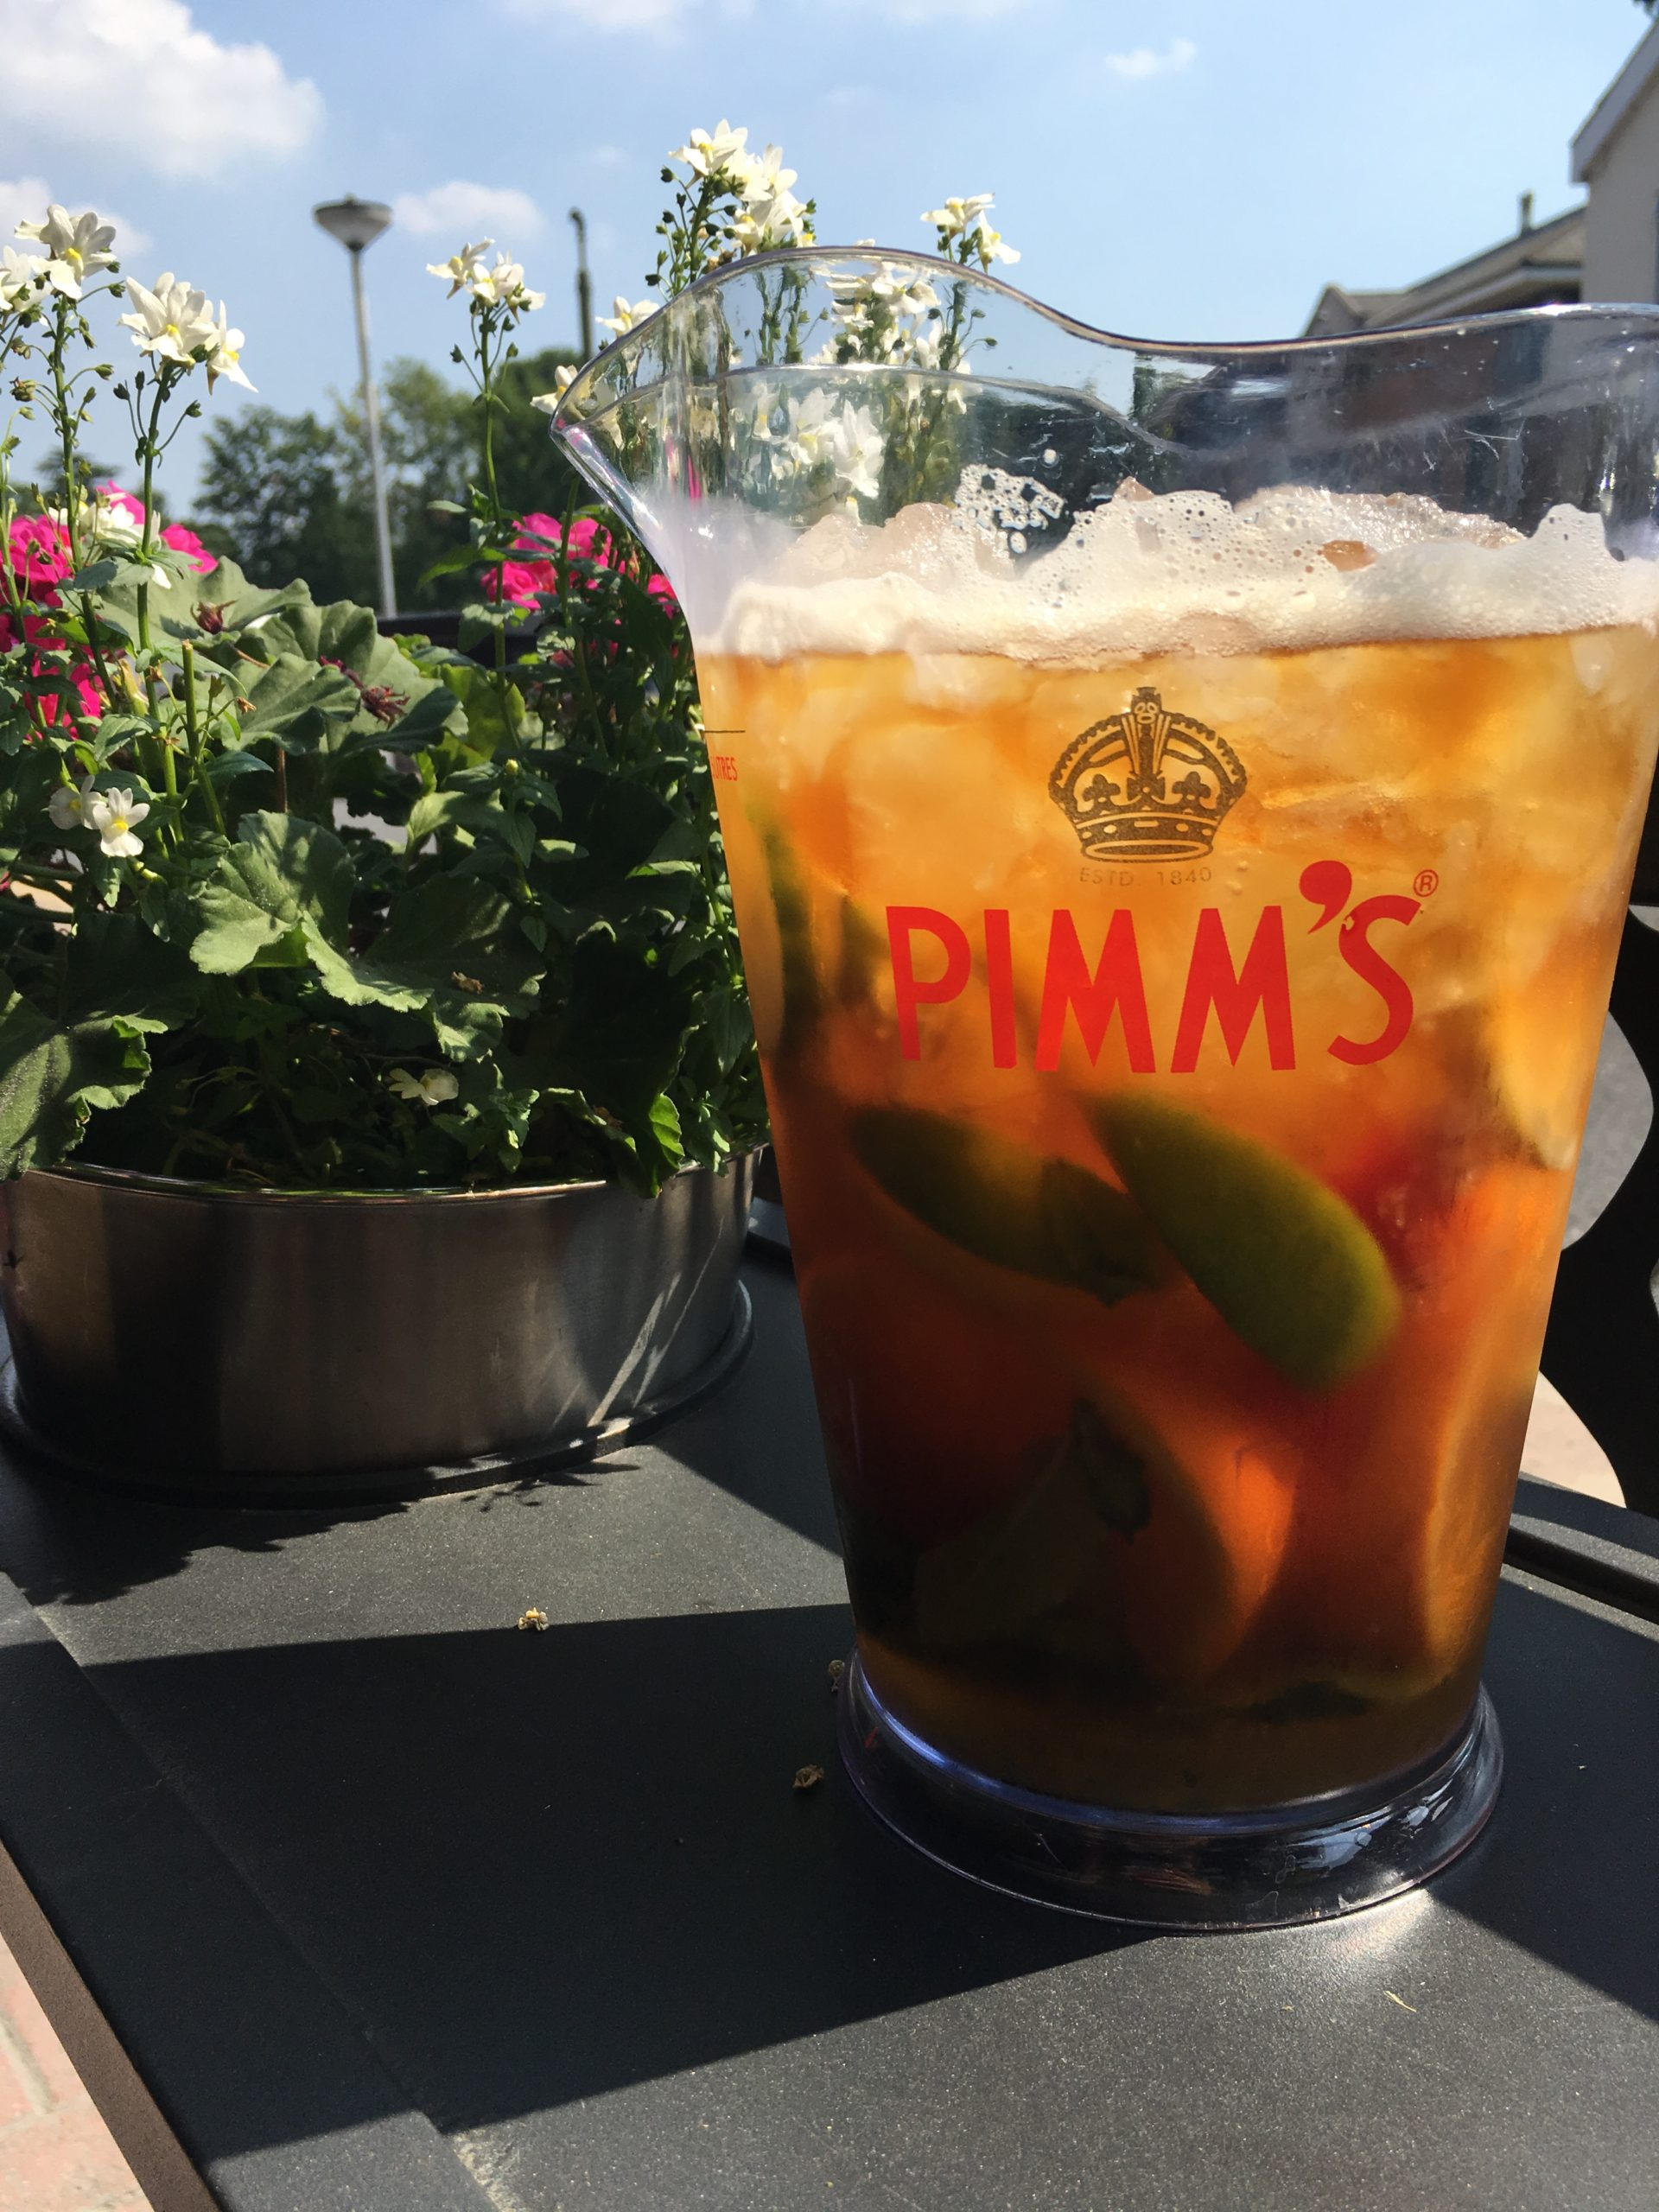 ENJOY OUR PIMMS SELECTION THIS SUMMER